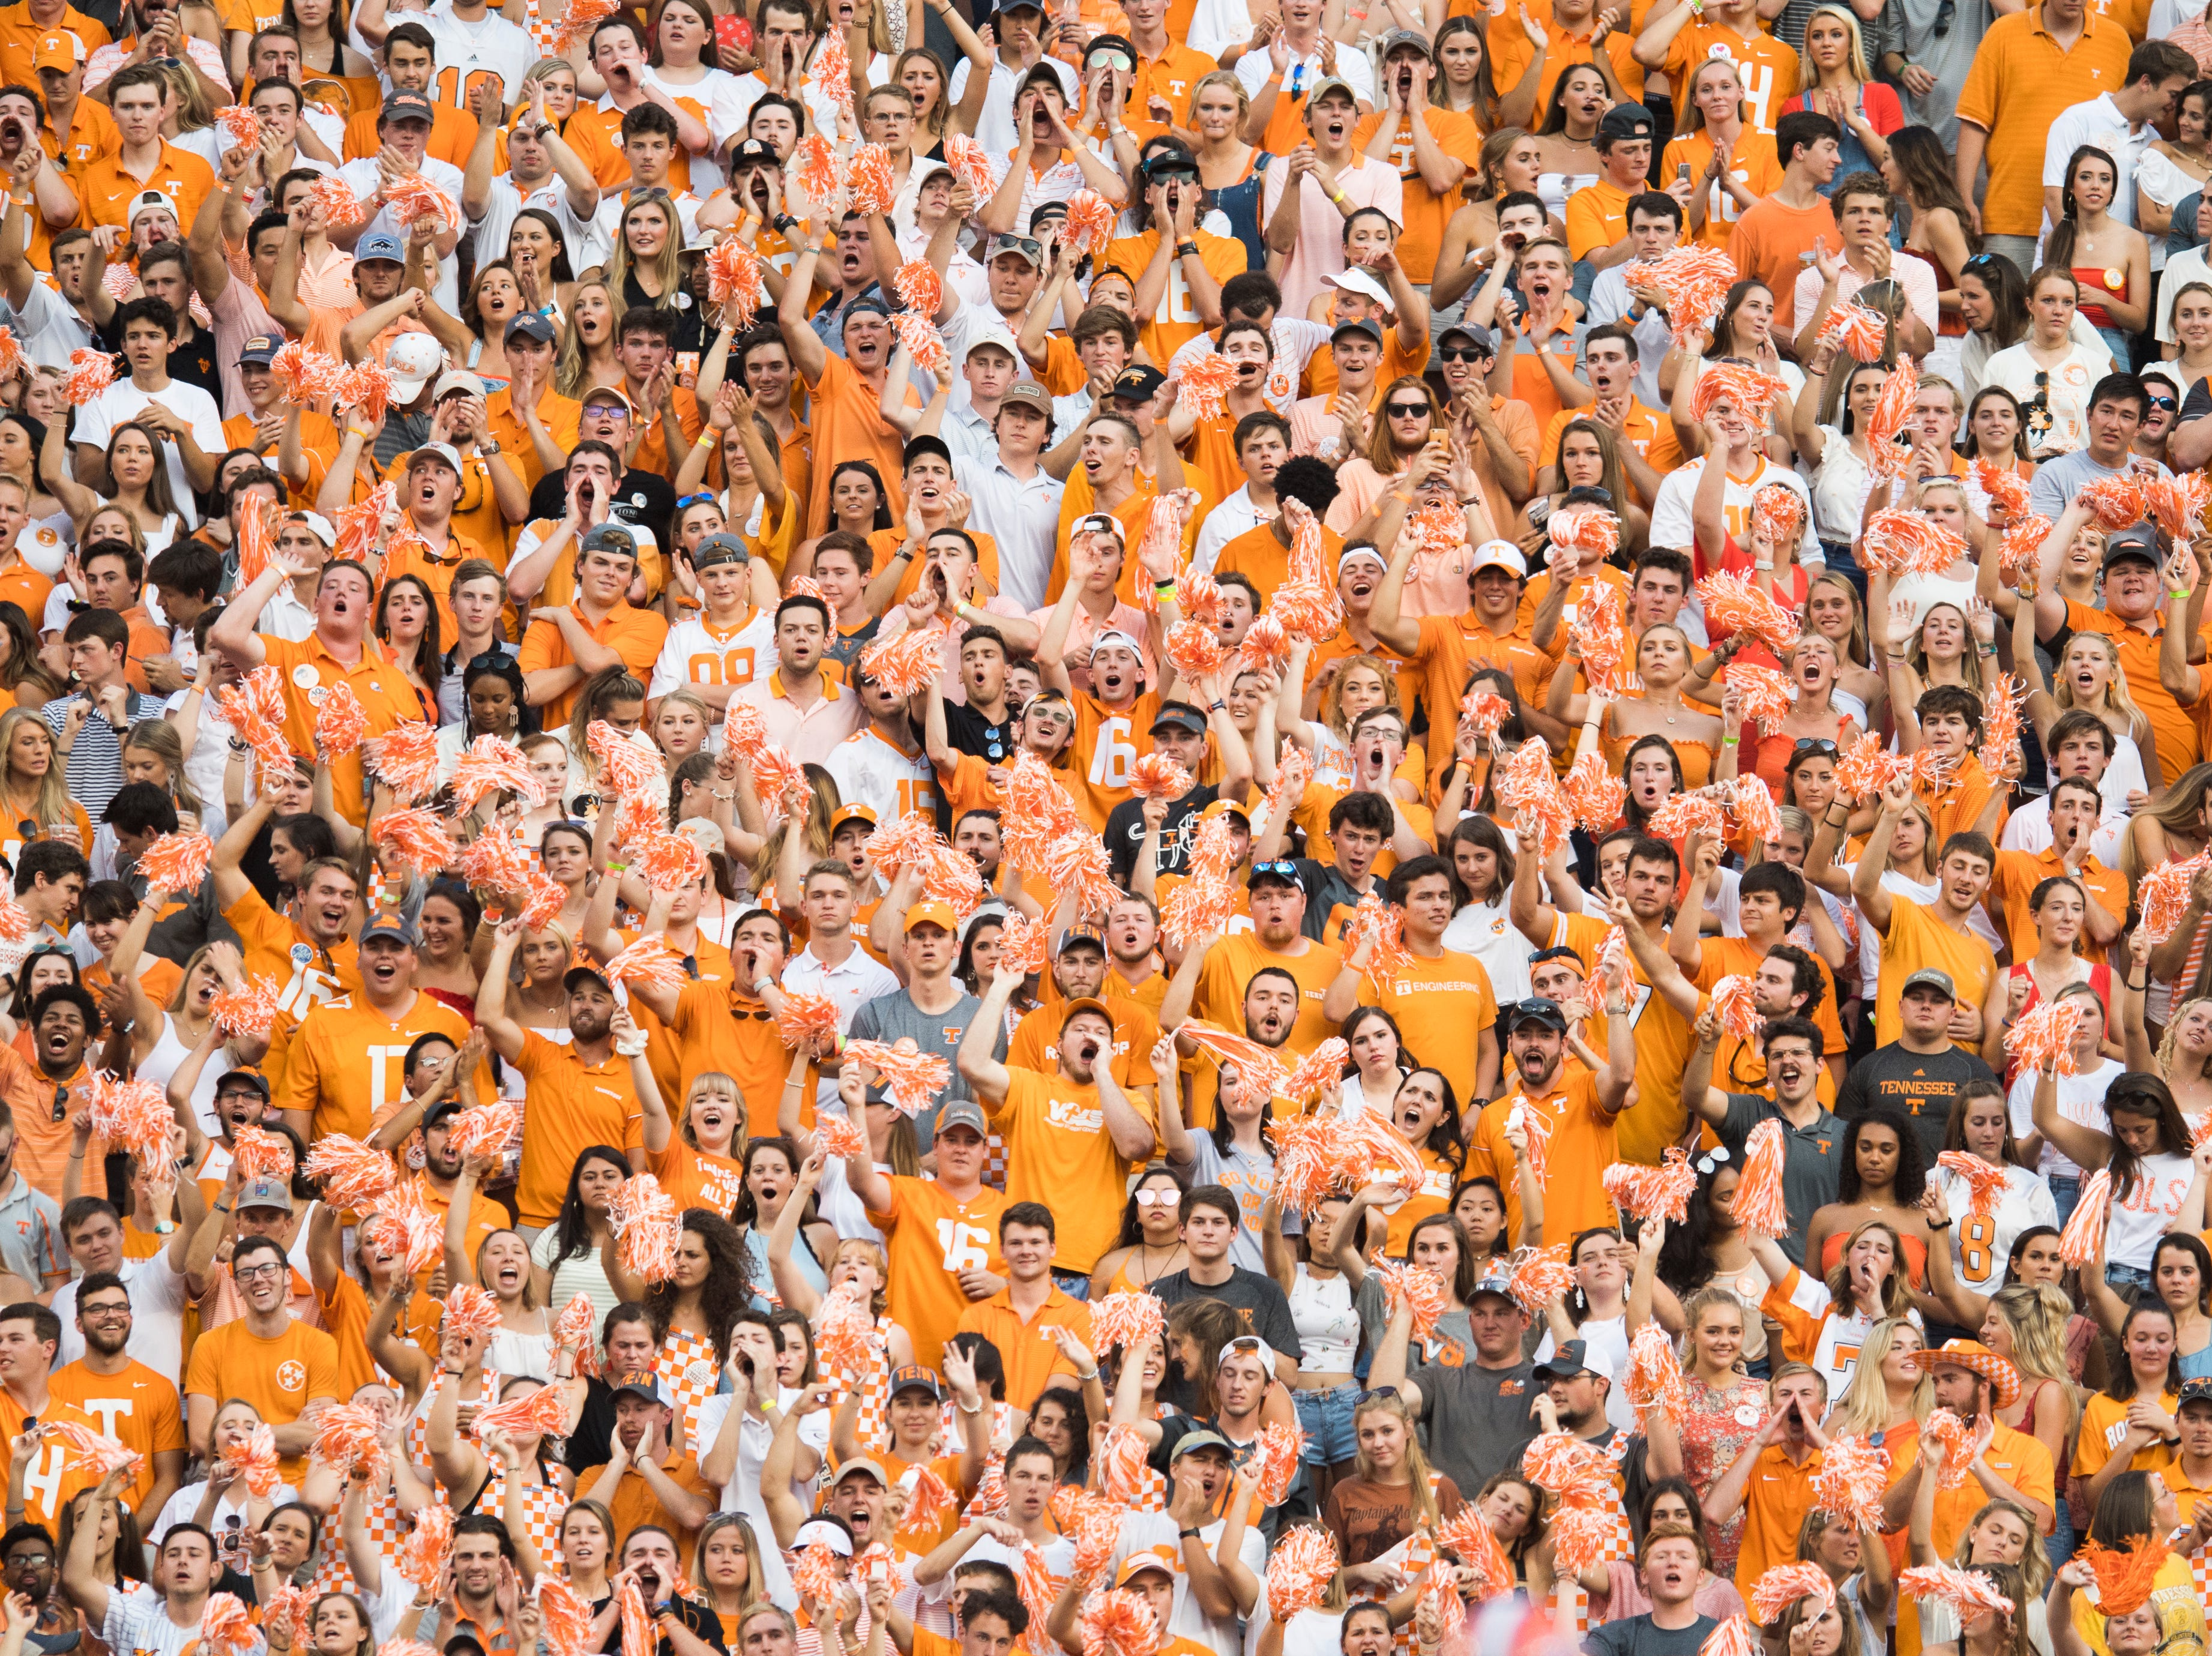 Vol fans cheer during a game between Tennessee and Florida at Neyland Stadium in Knoxville, Tennessee on Saturday, September 22, 2018.